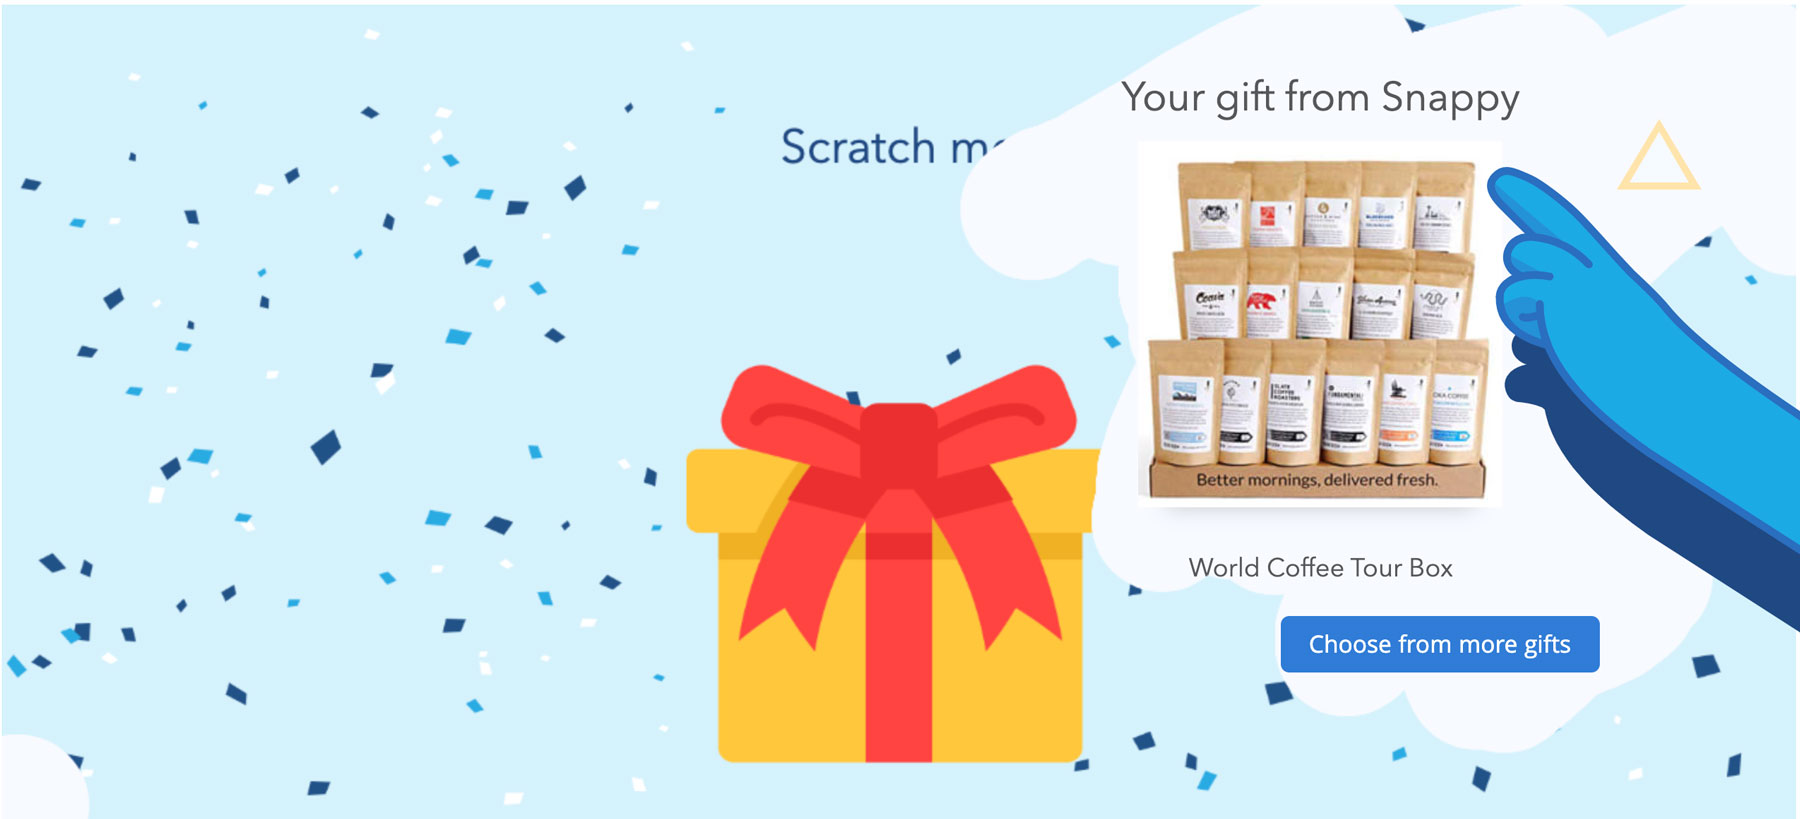 Gifts for employees and coworkers - Snappy gift service